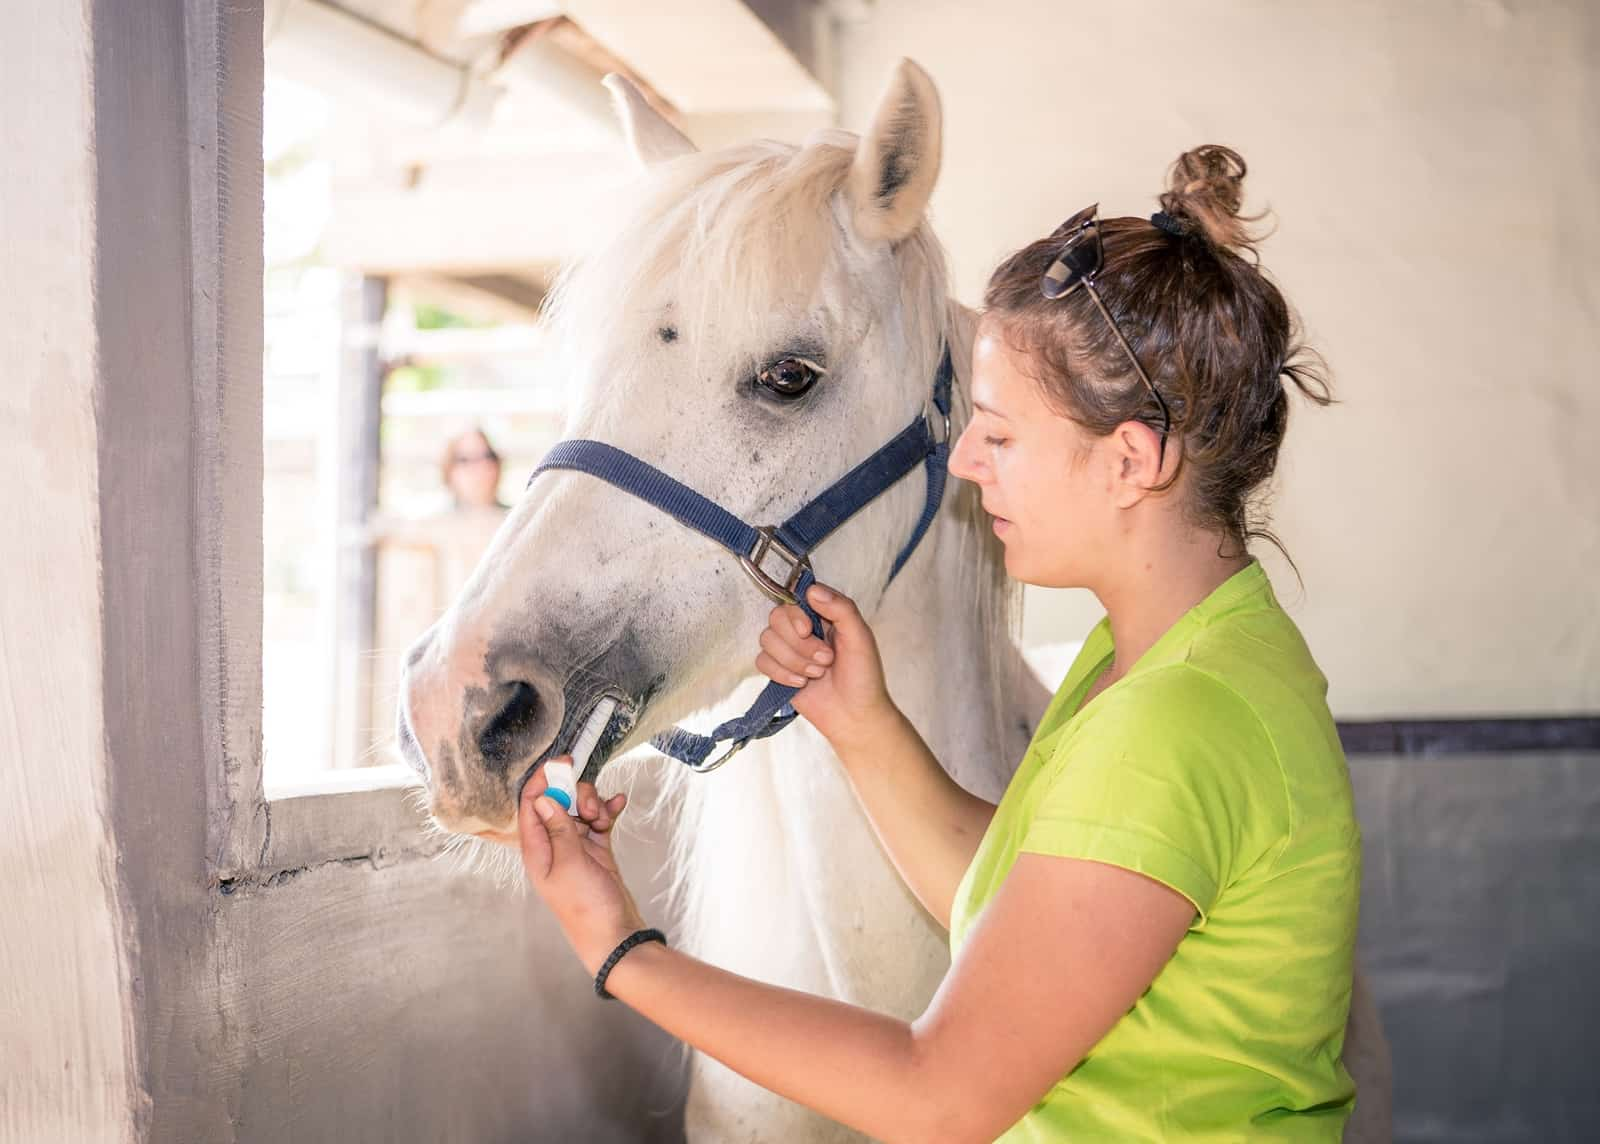 Can I Maintain My Semi-Retired Horse on an NSAID